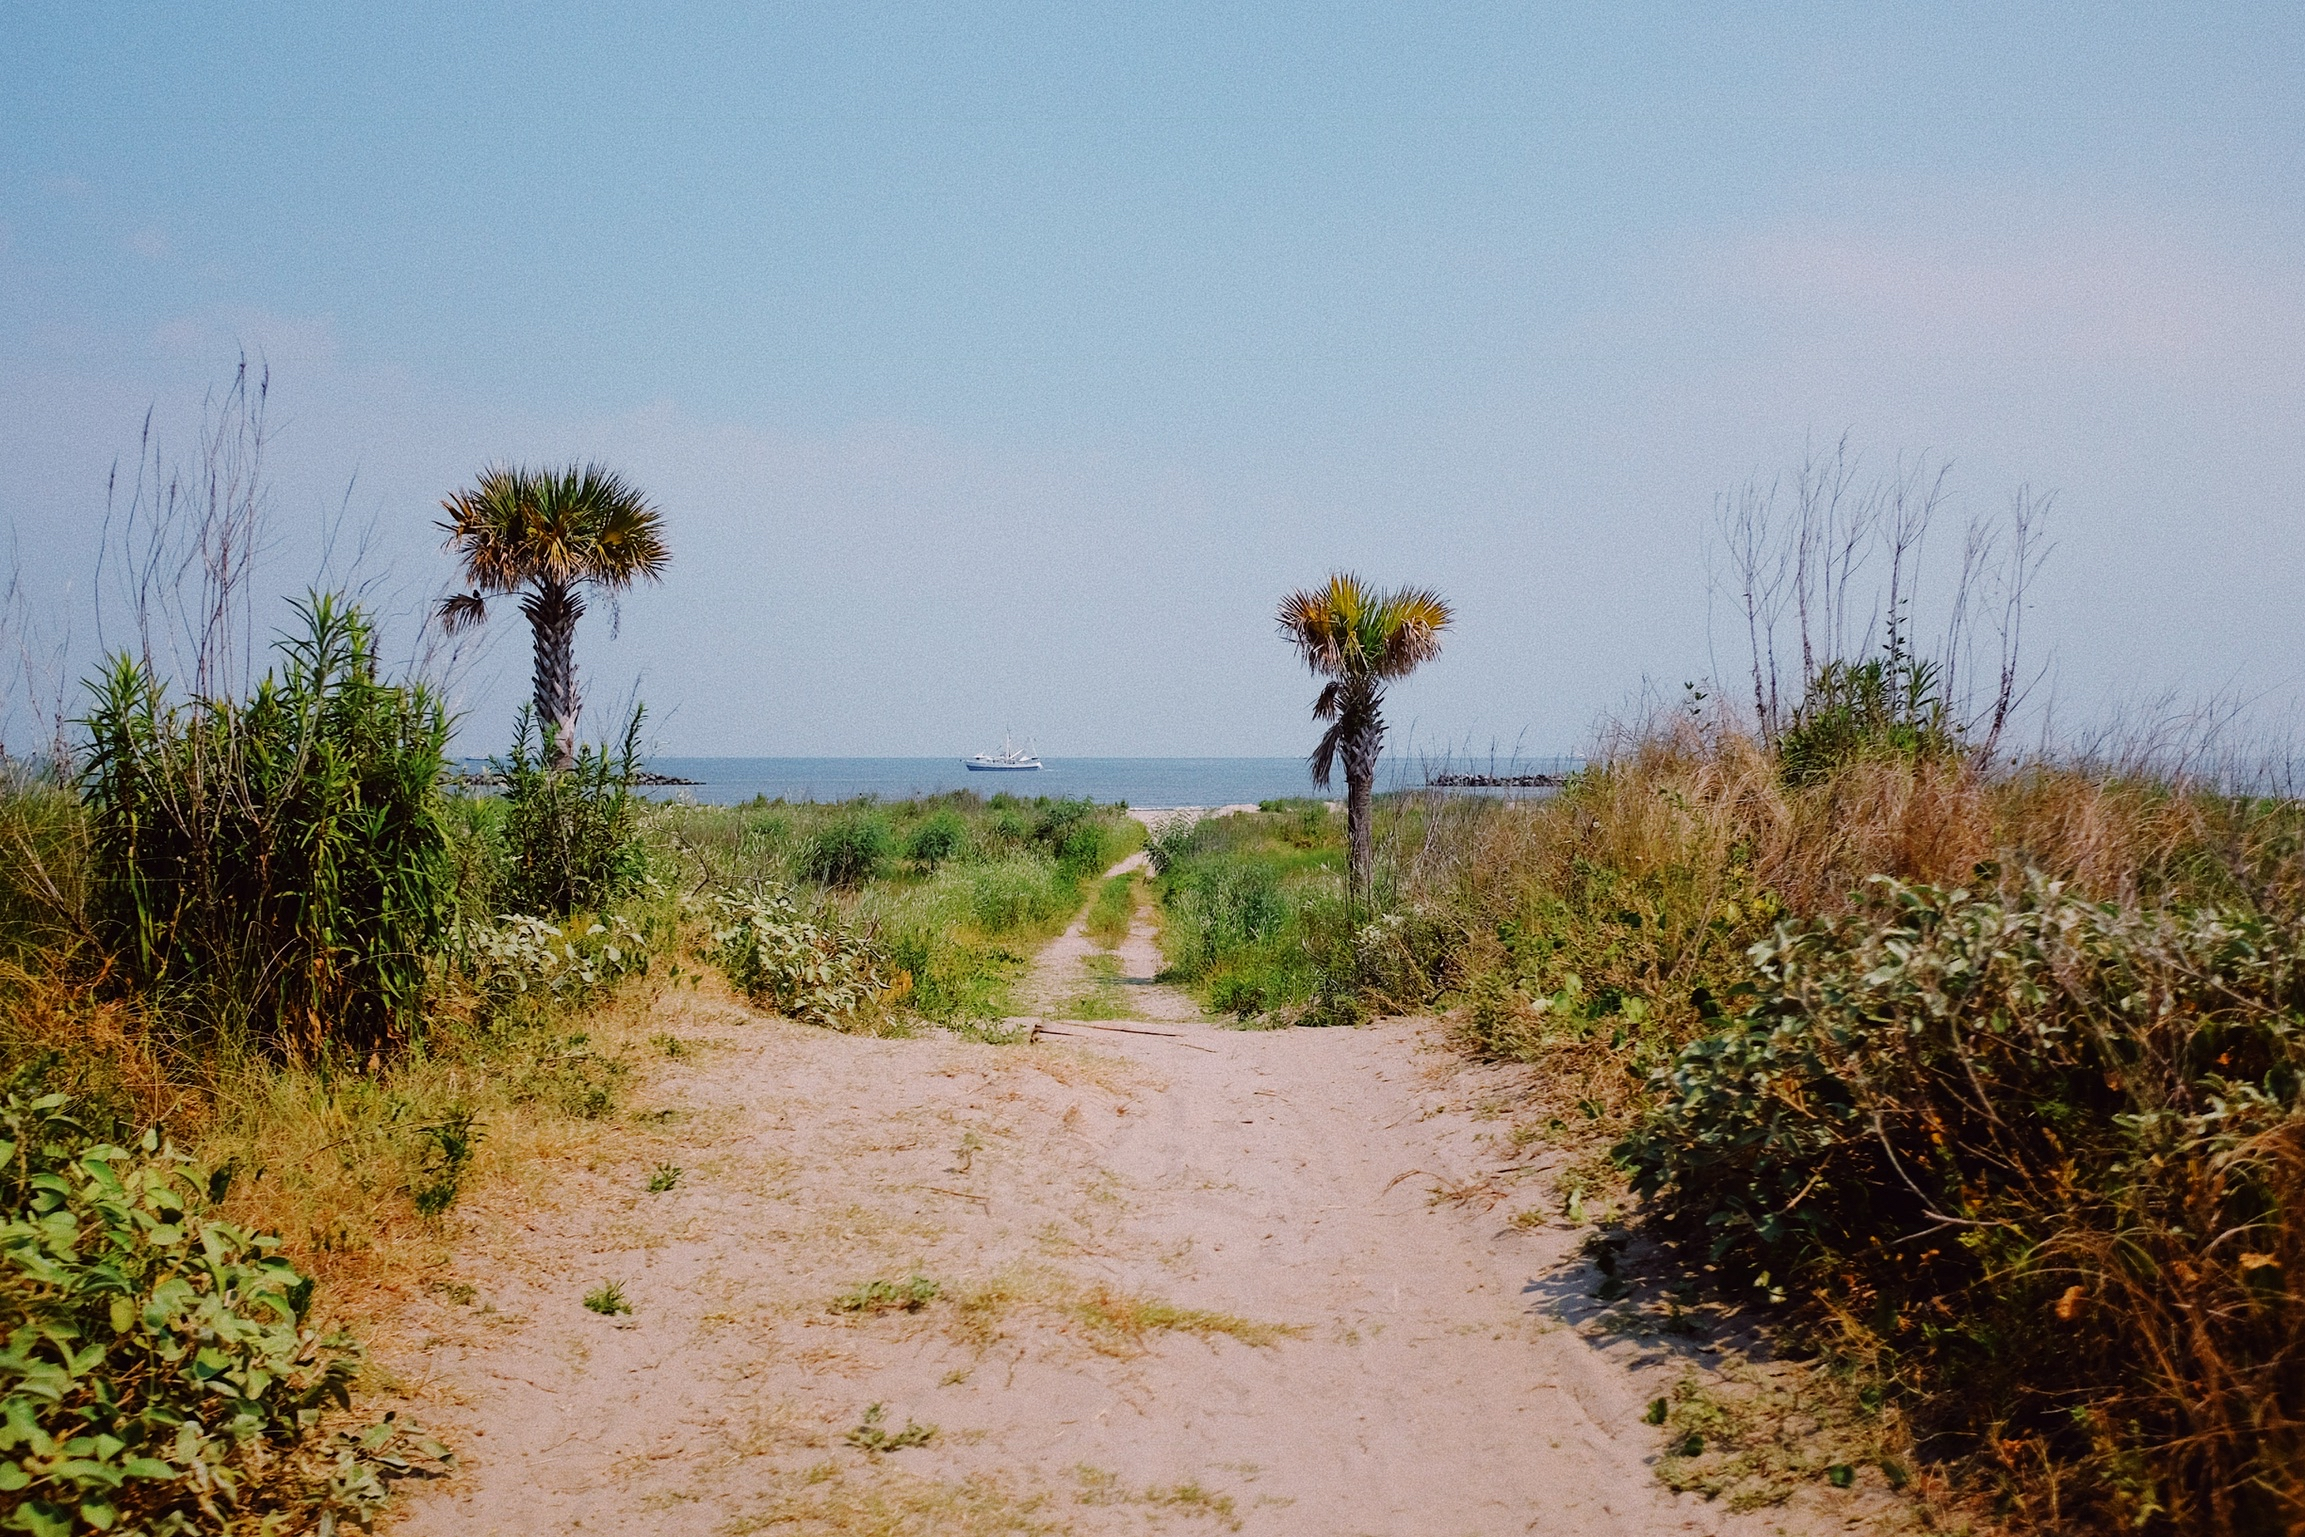 One of the many levee crossovers in Grand Isle providing easy access to the beach.